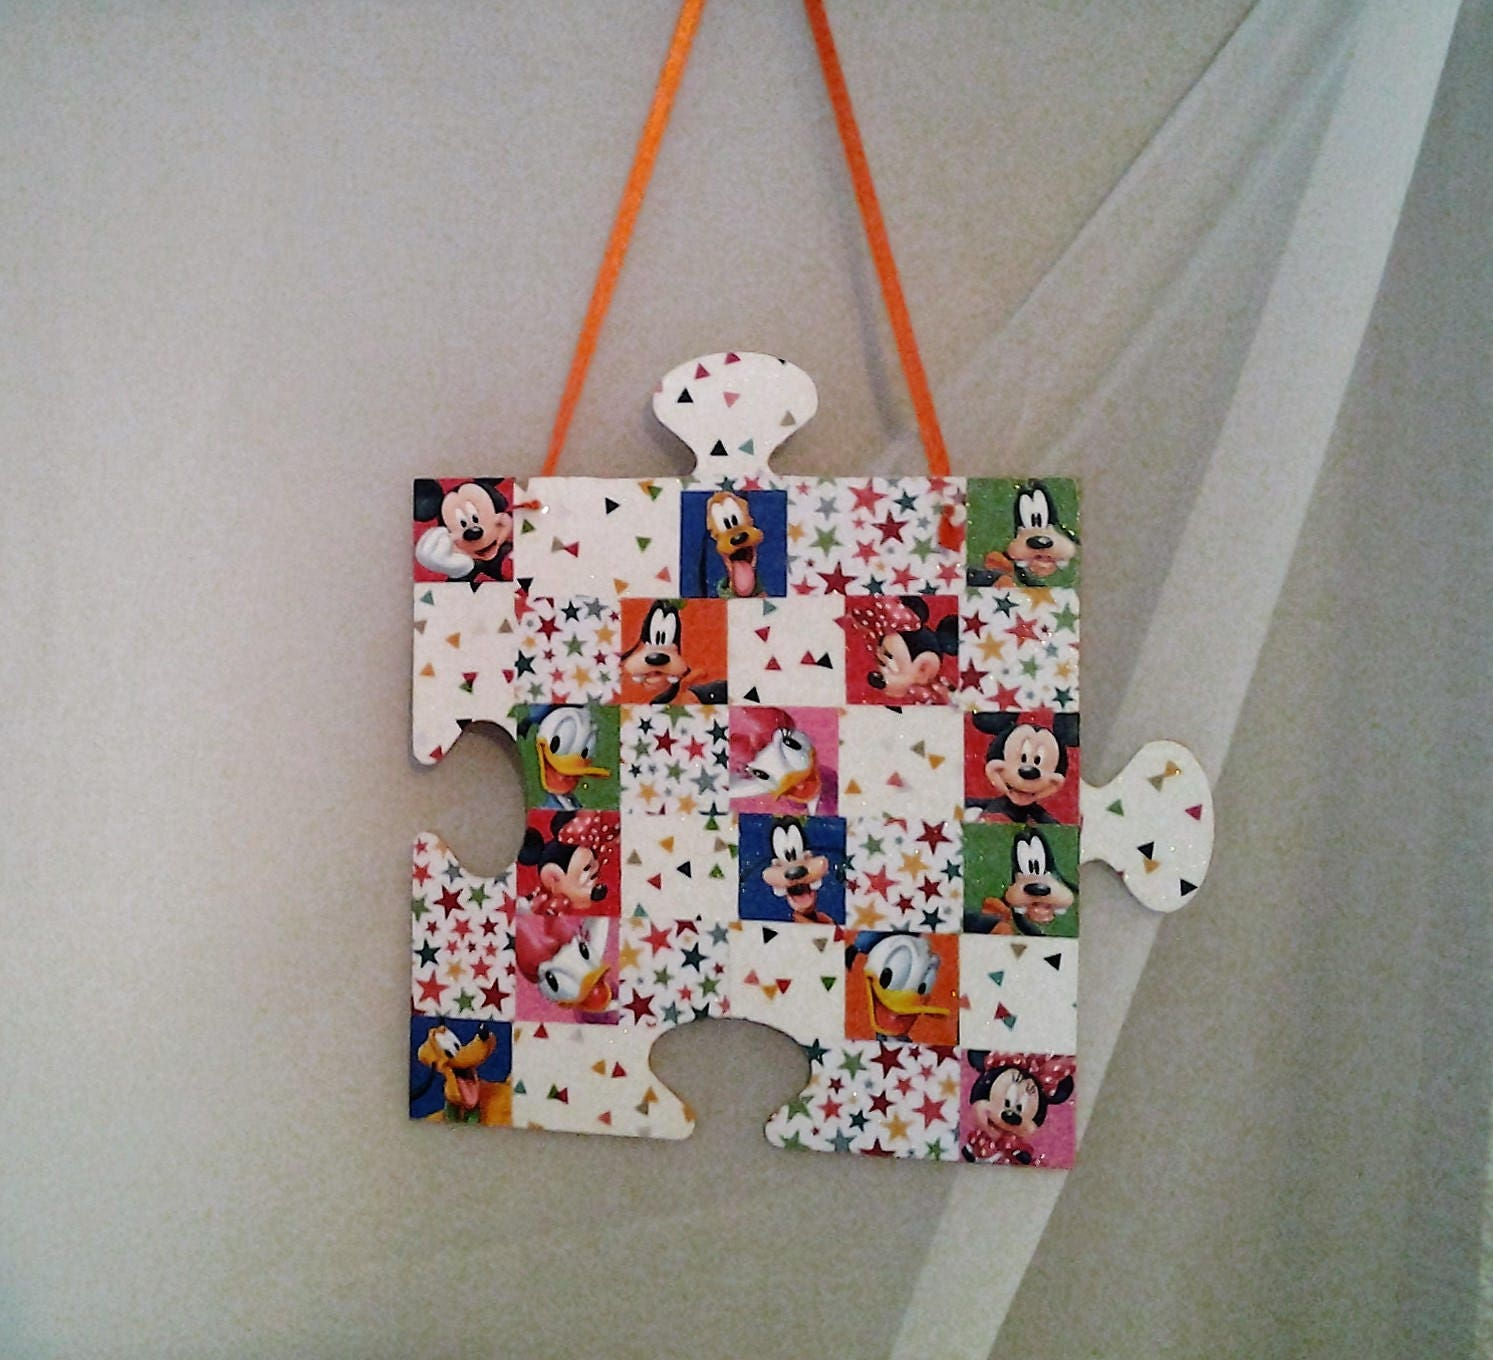 Puzzle Piece Shape Wall Hanging Disney Characters Colorful Fun